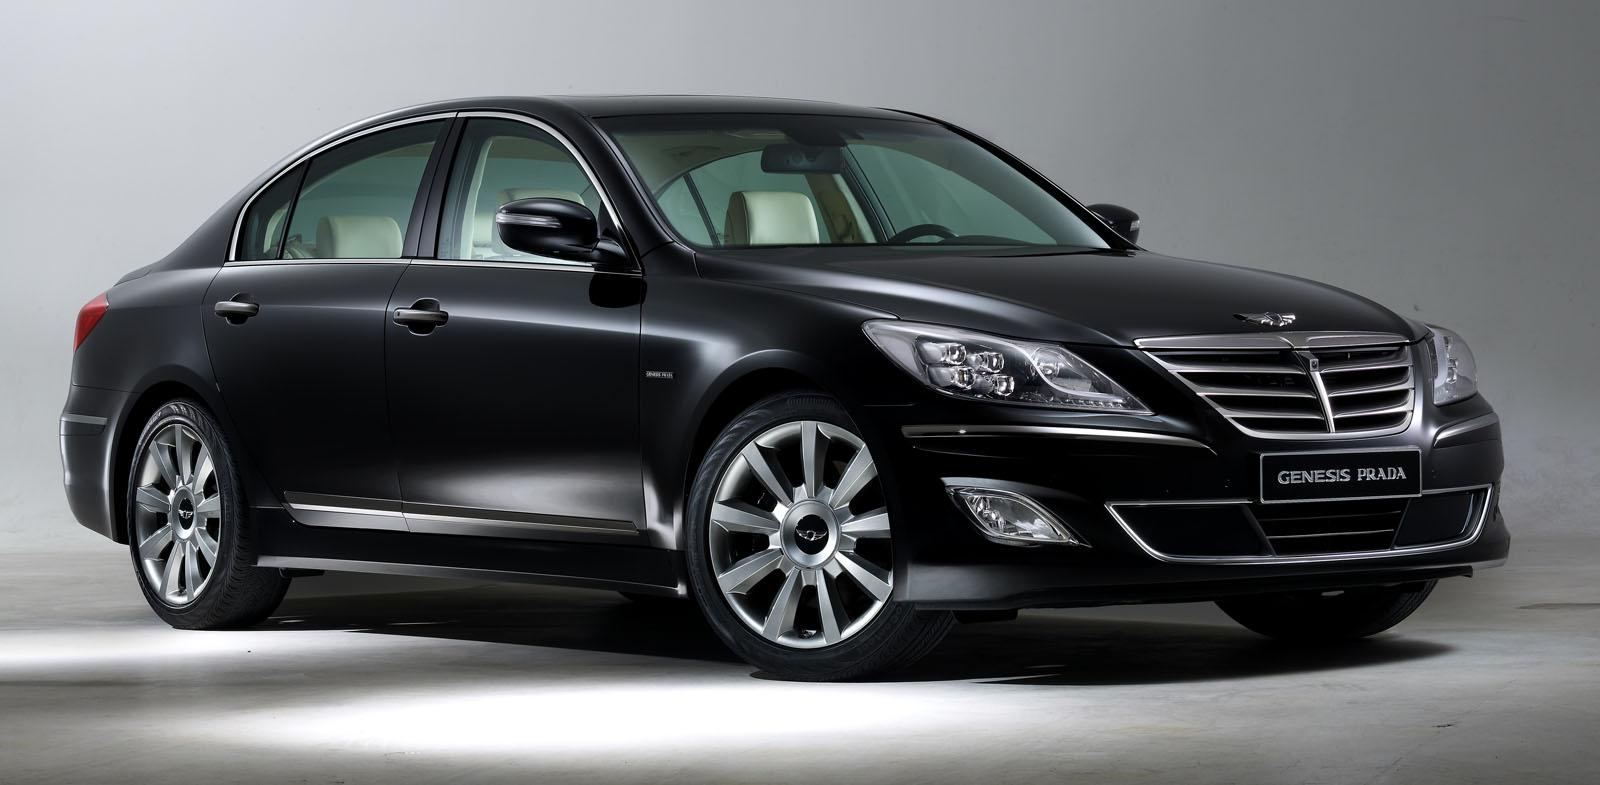 2012 Model New Hyundai Genesis Prada